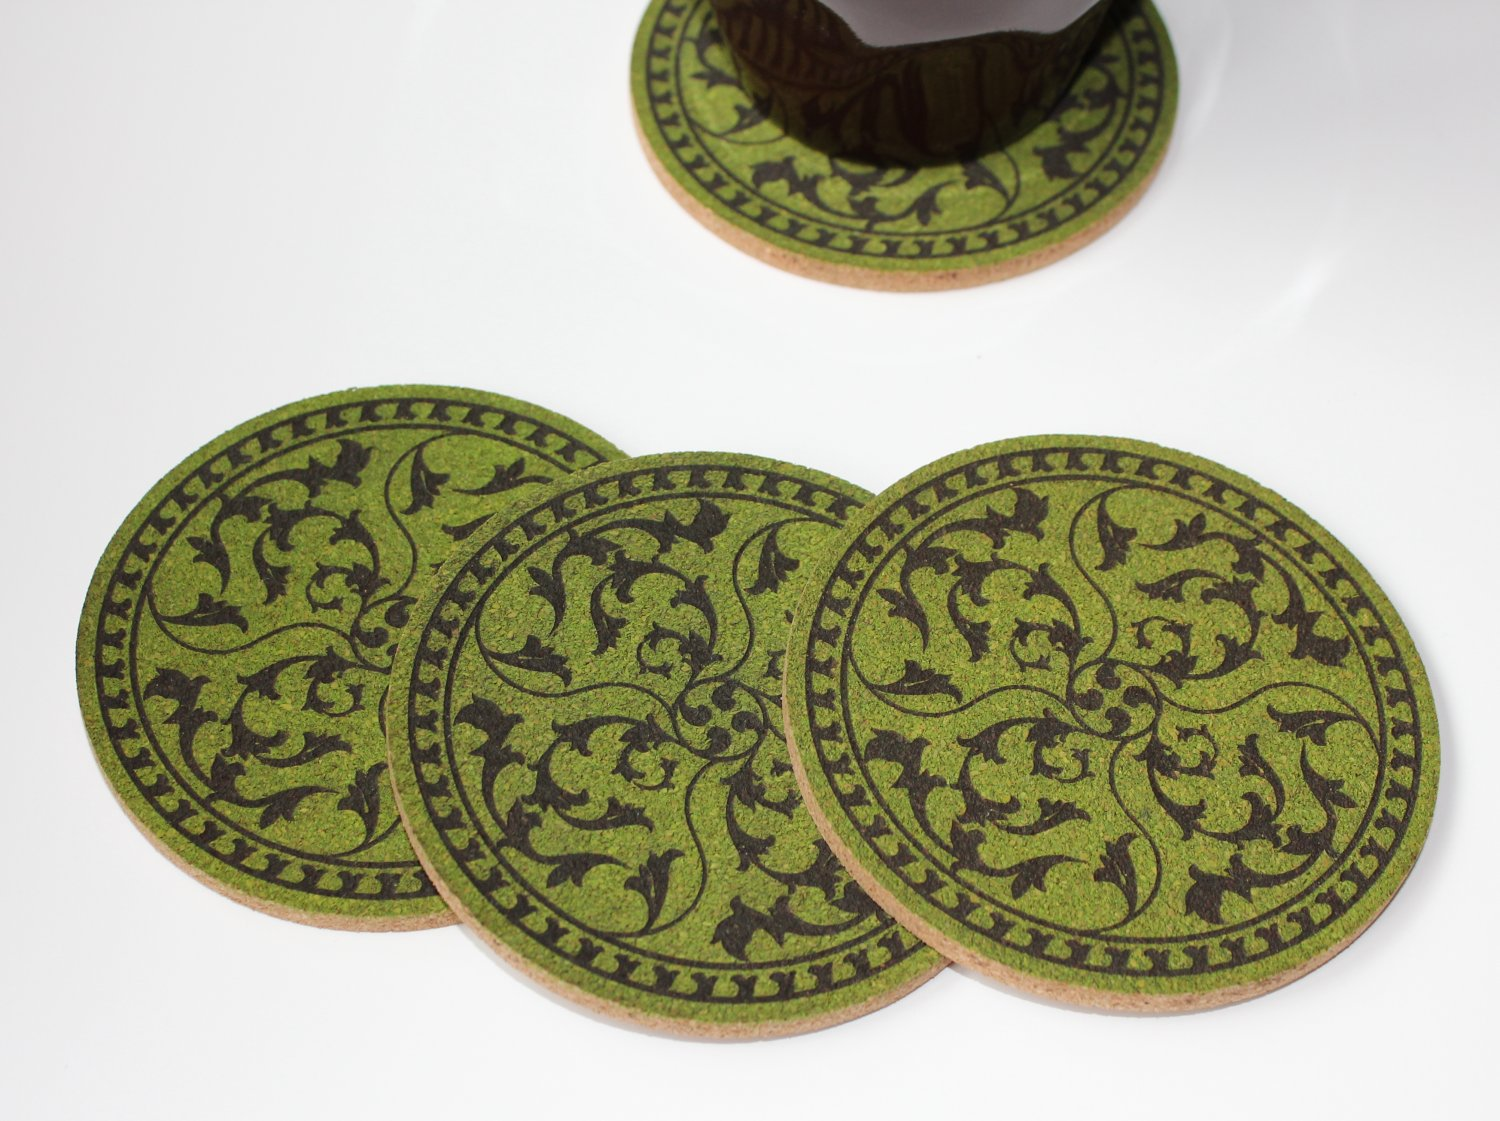 Floral design laser engraved cork coasters set of 4 for Best coasters for sweaty drinks